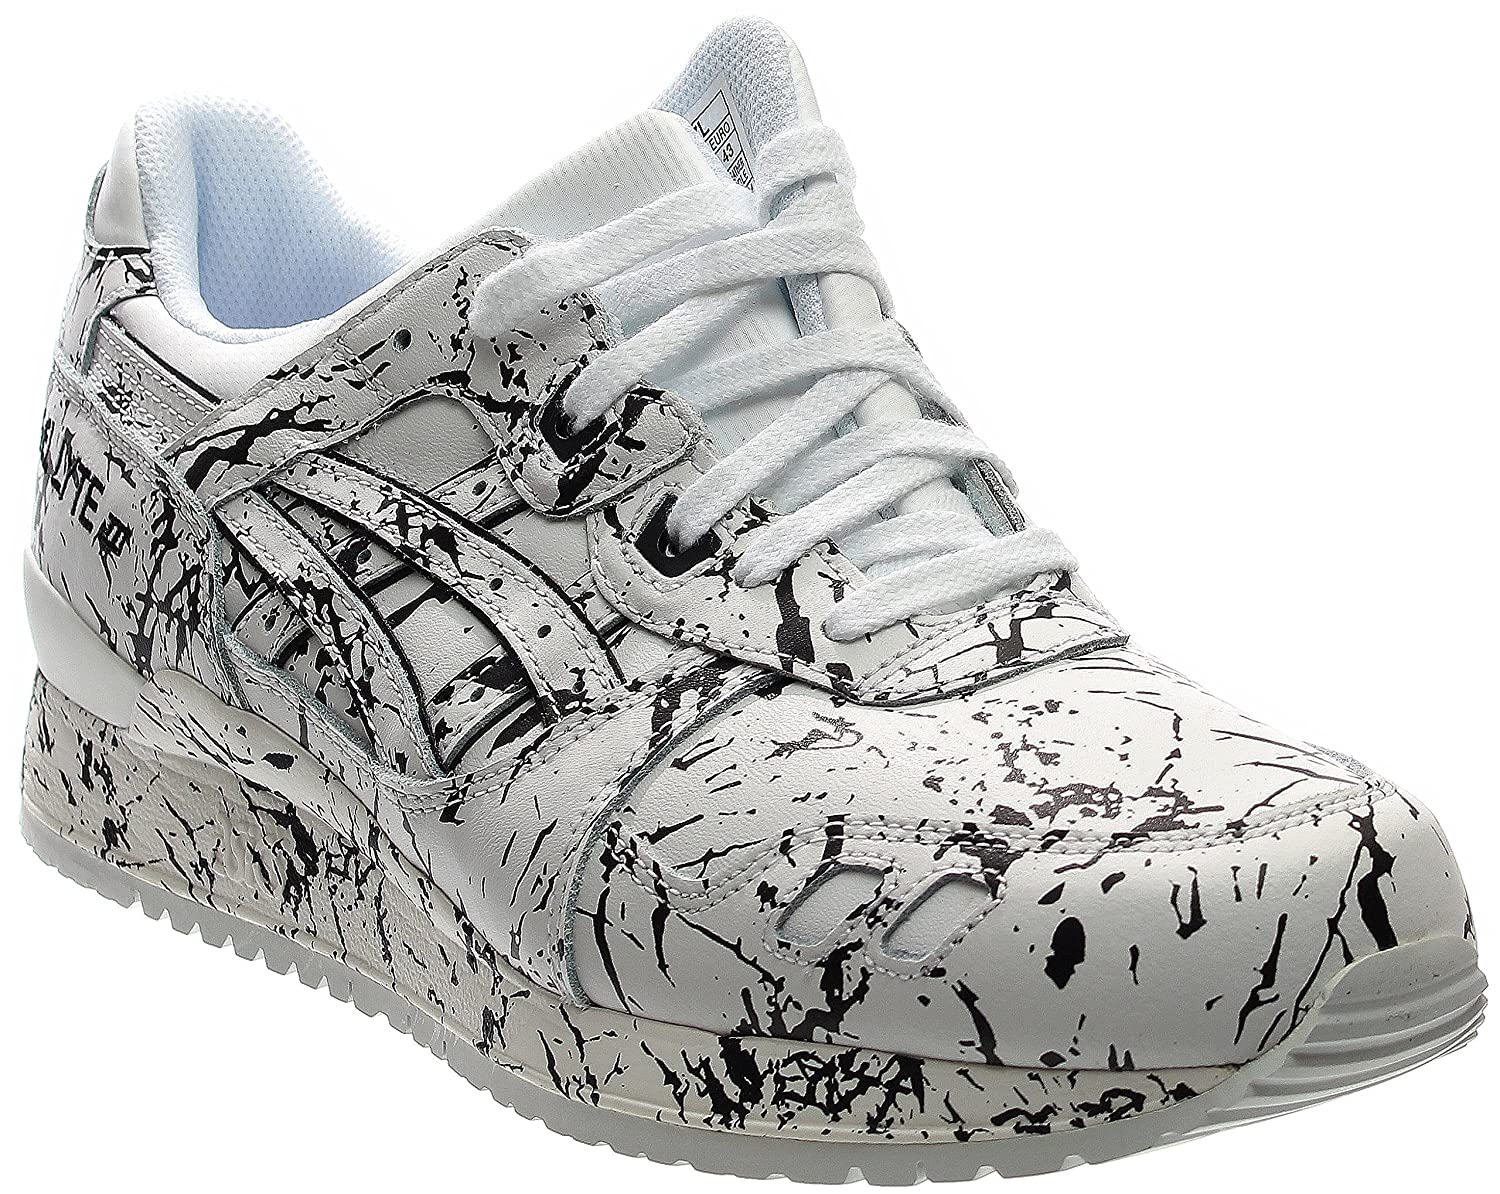 ASICS Men's Gel-Lyte III Running Shoe B00ZQ2PW7S 12 M US Women / 10.5 M US Men|White